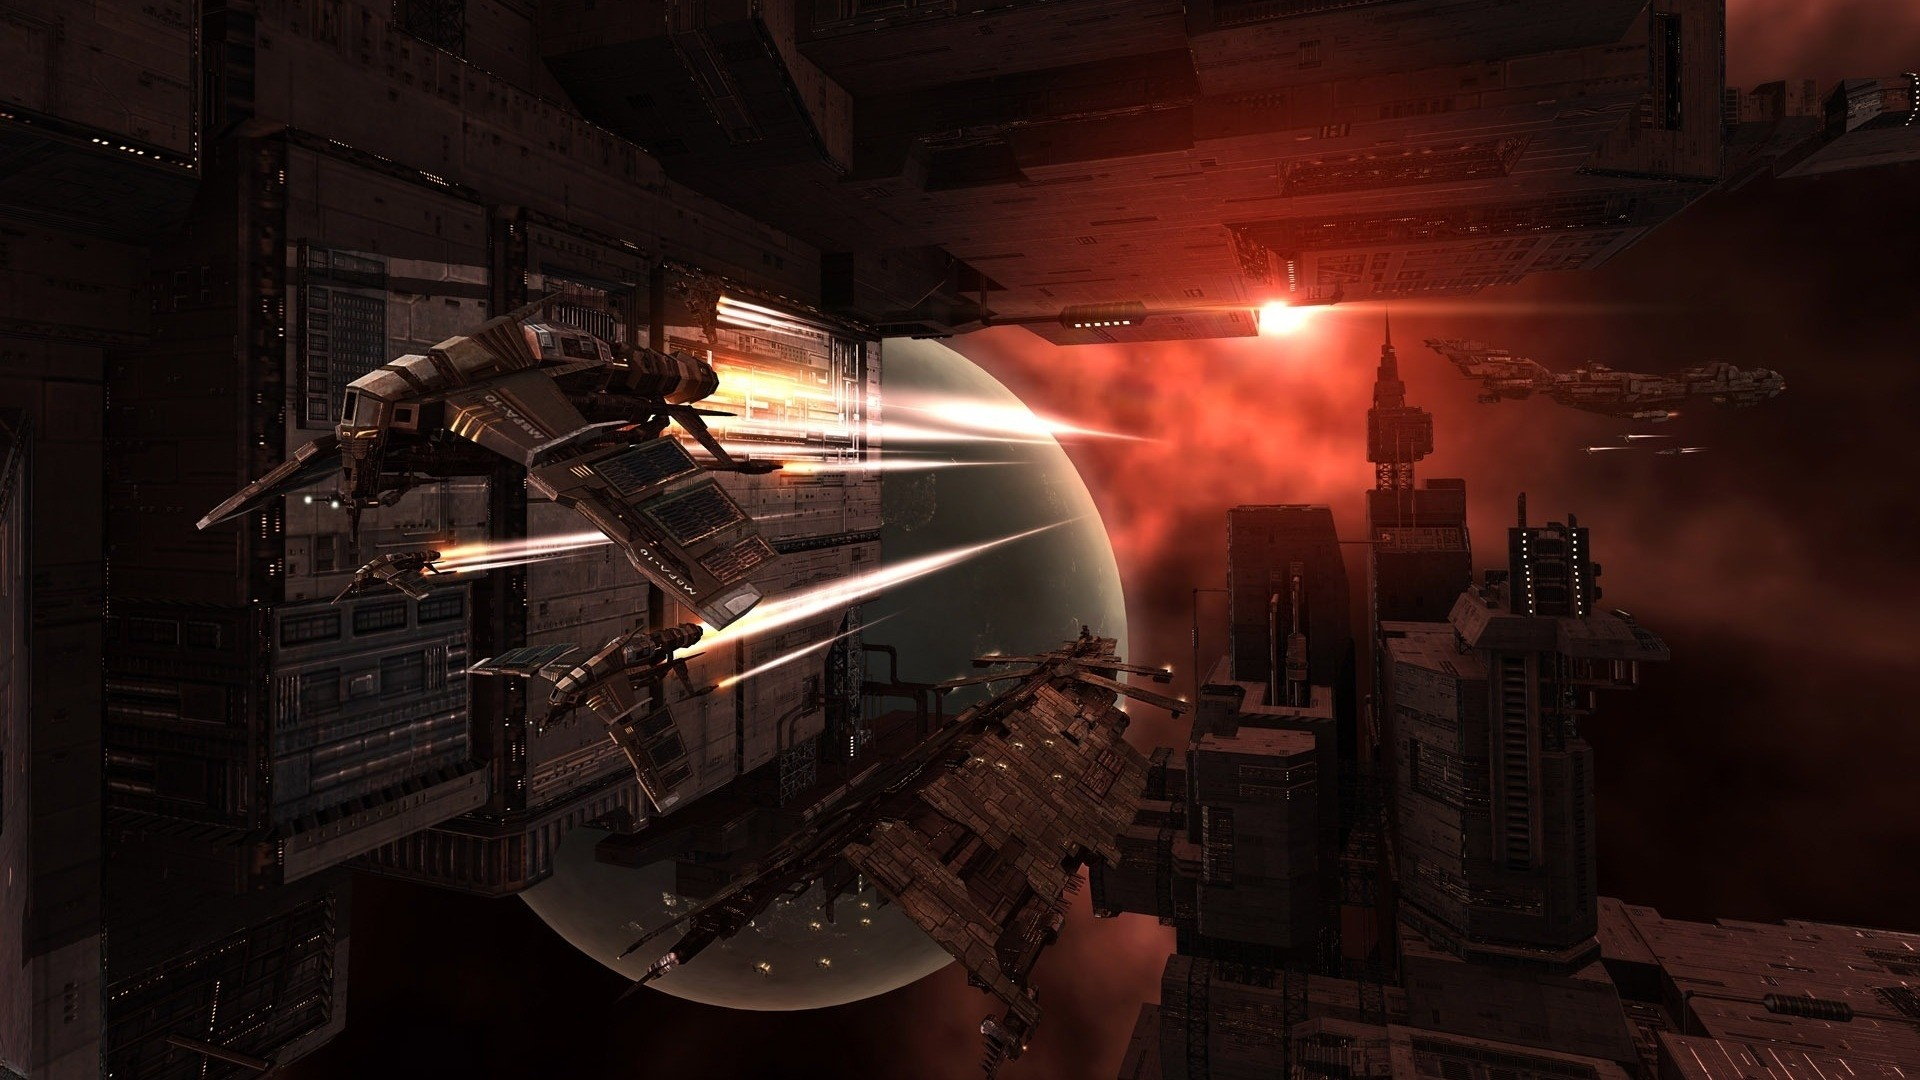 Video Game – EVE Online Sci Fi Spaceship Space Station Wallpaper